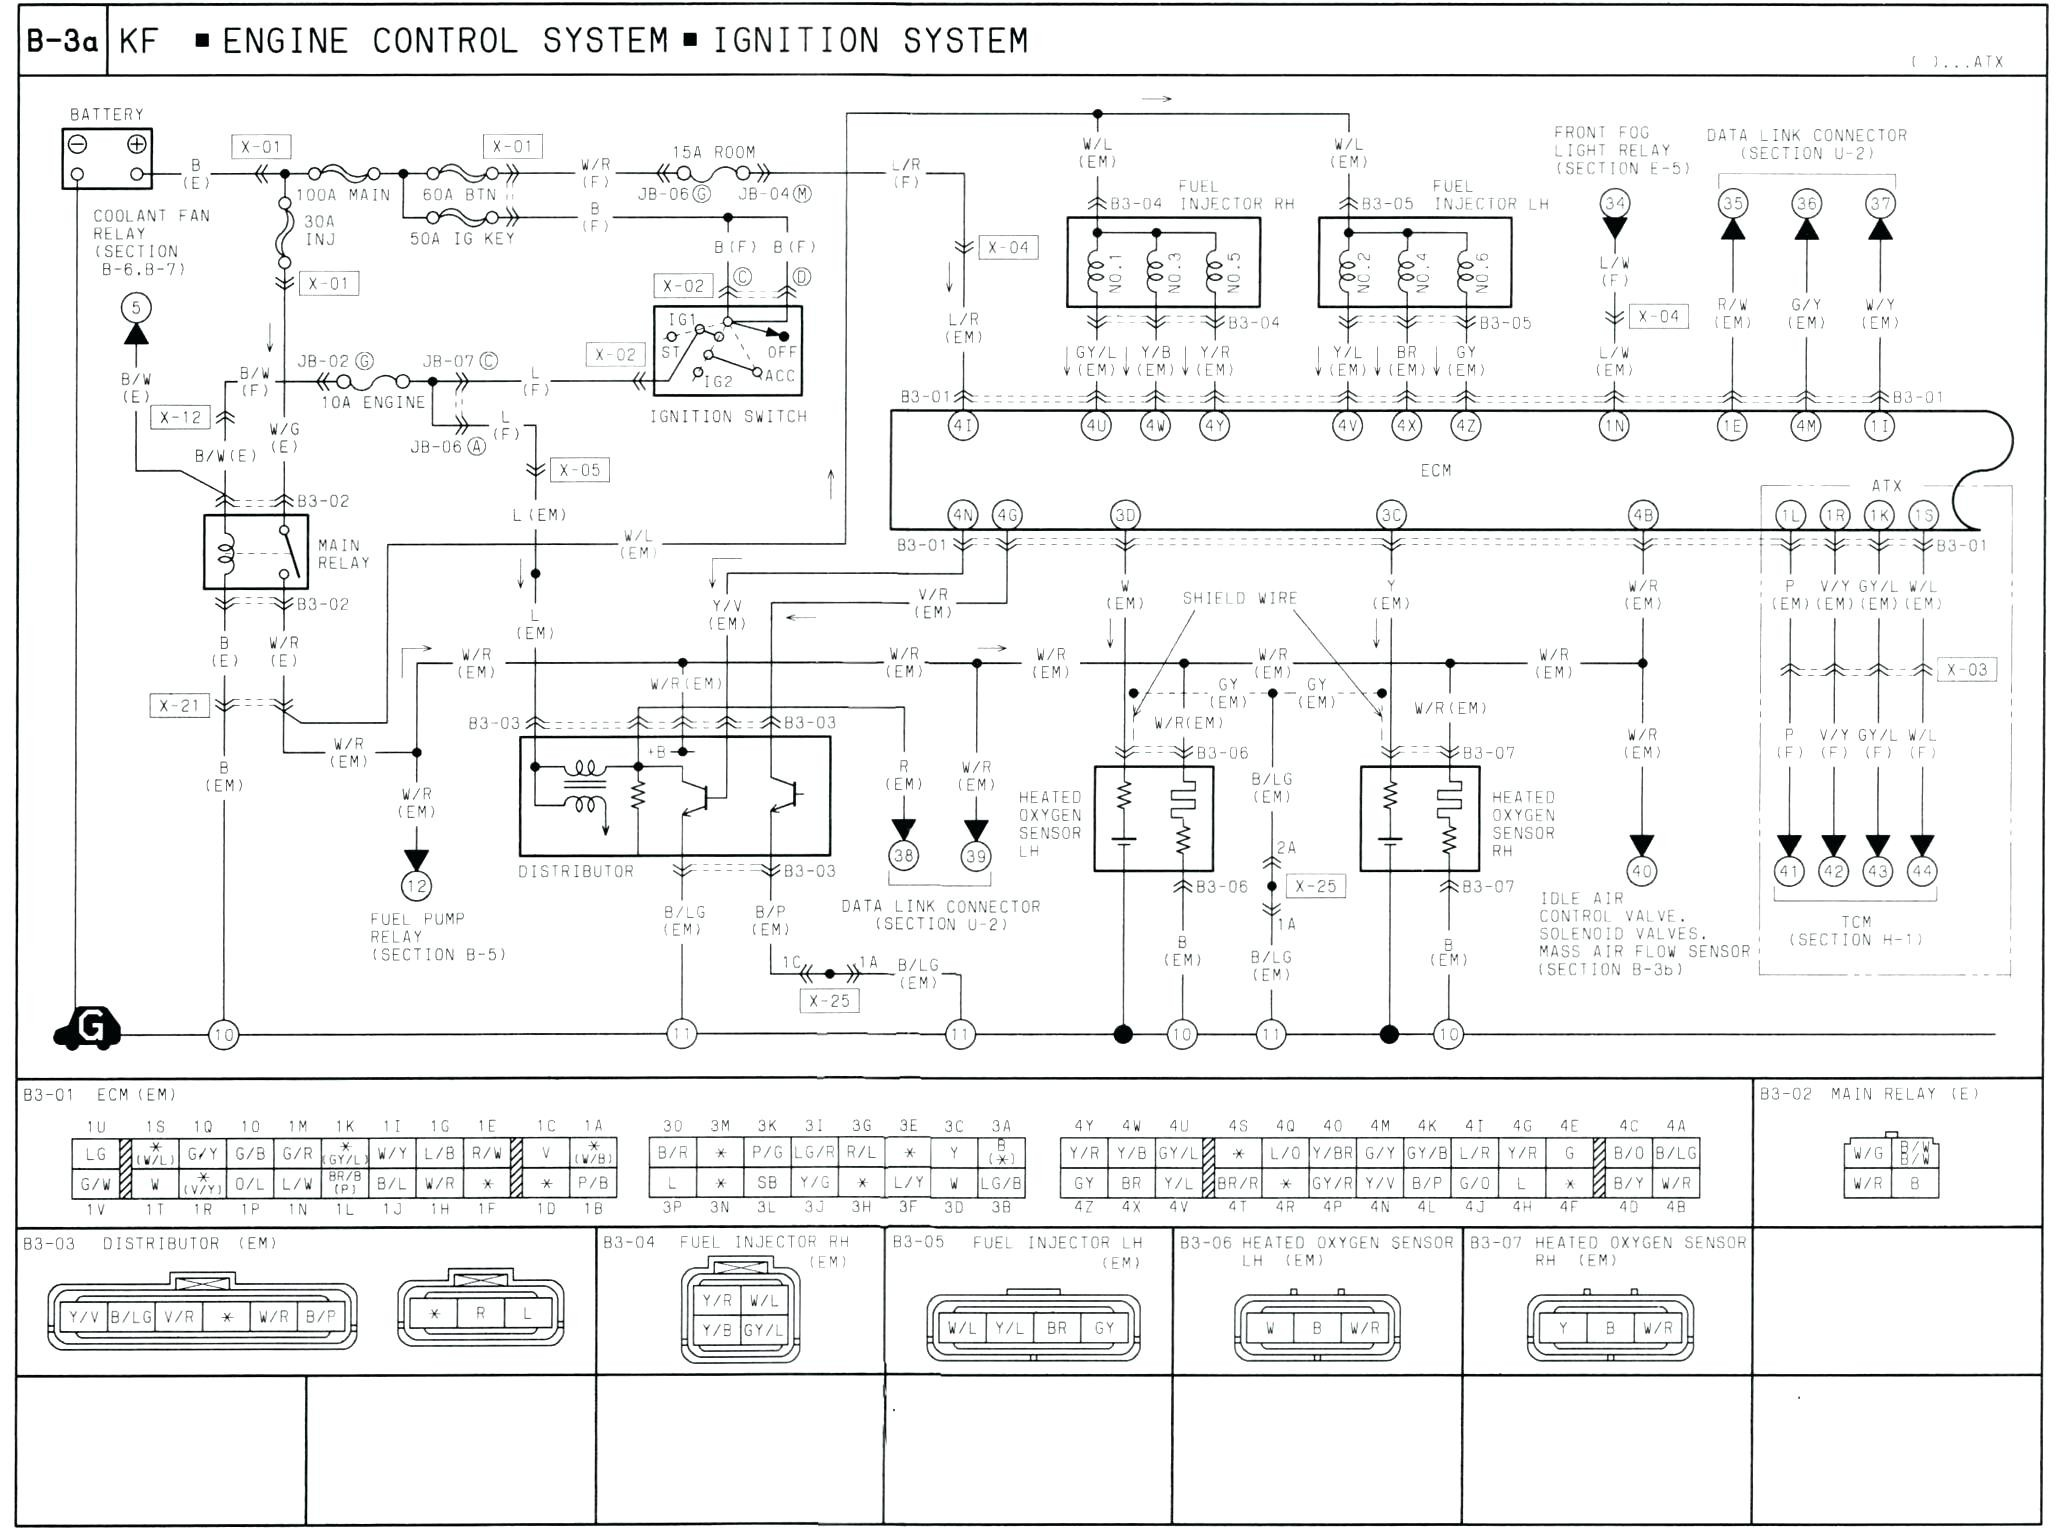 1991 Mazda Miata Fuse Box Wiring Diagram Diagrams 90 Engine Detailed Schematics 1990 Location